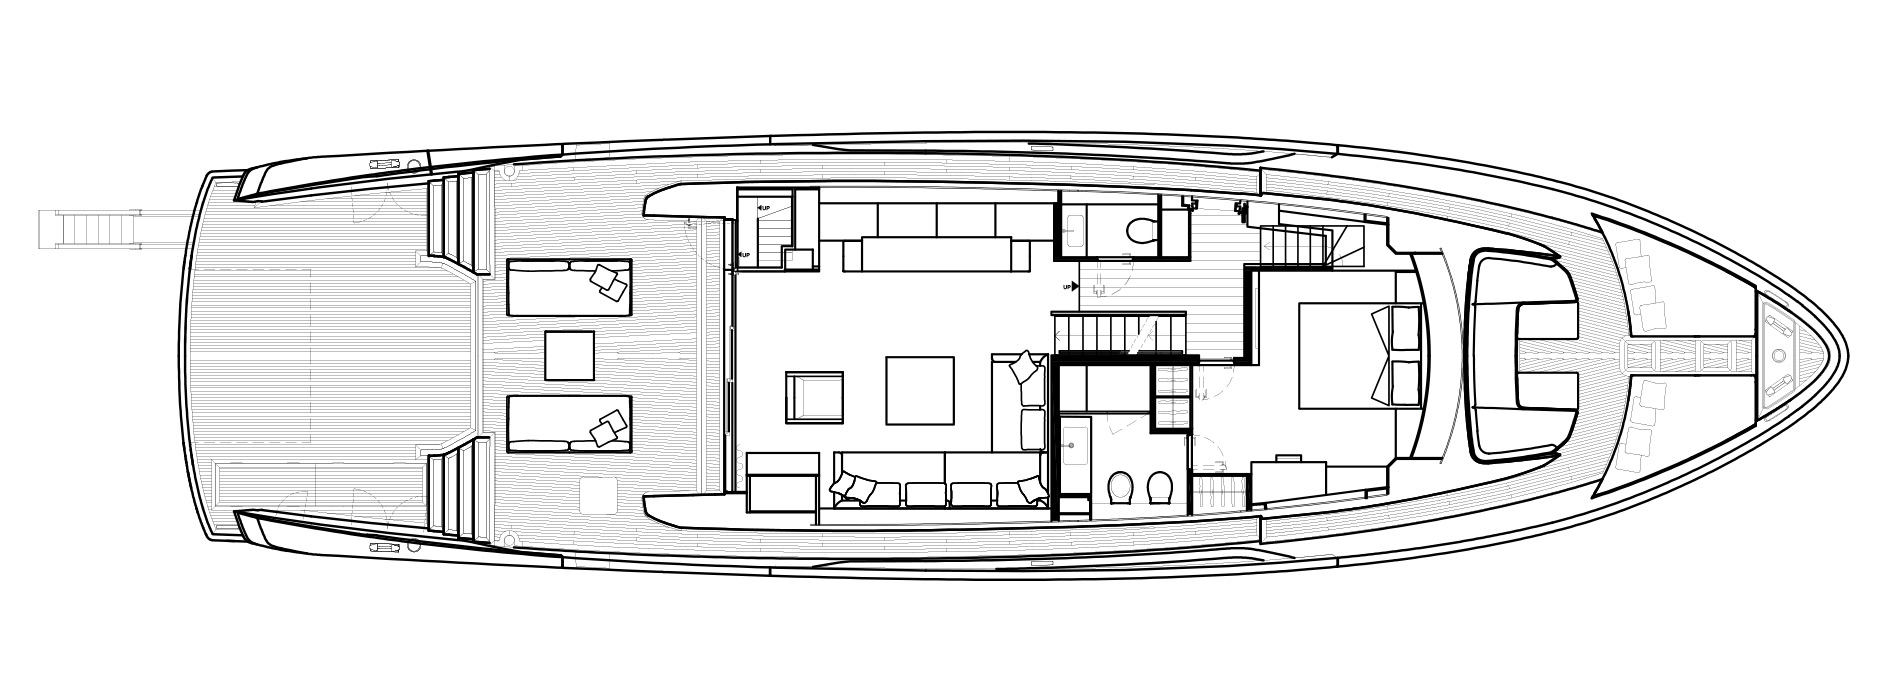 Sanlorenzo Yachts SX88 Main deck Version C